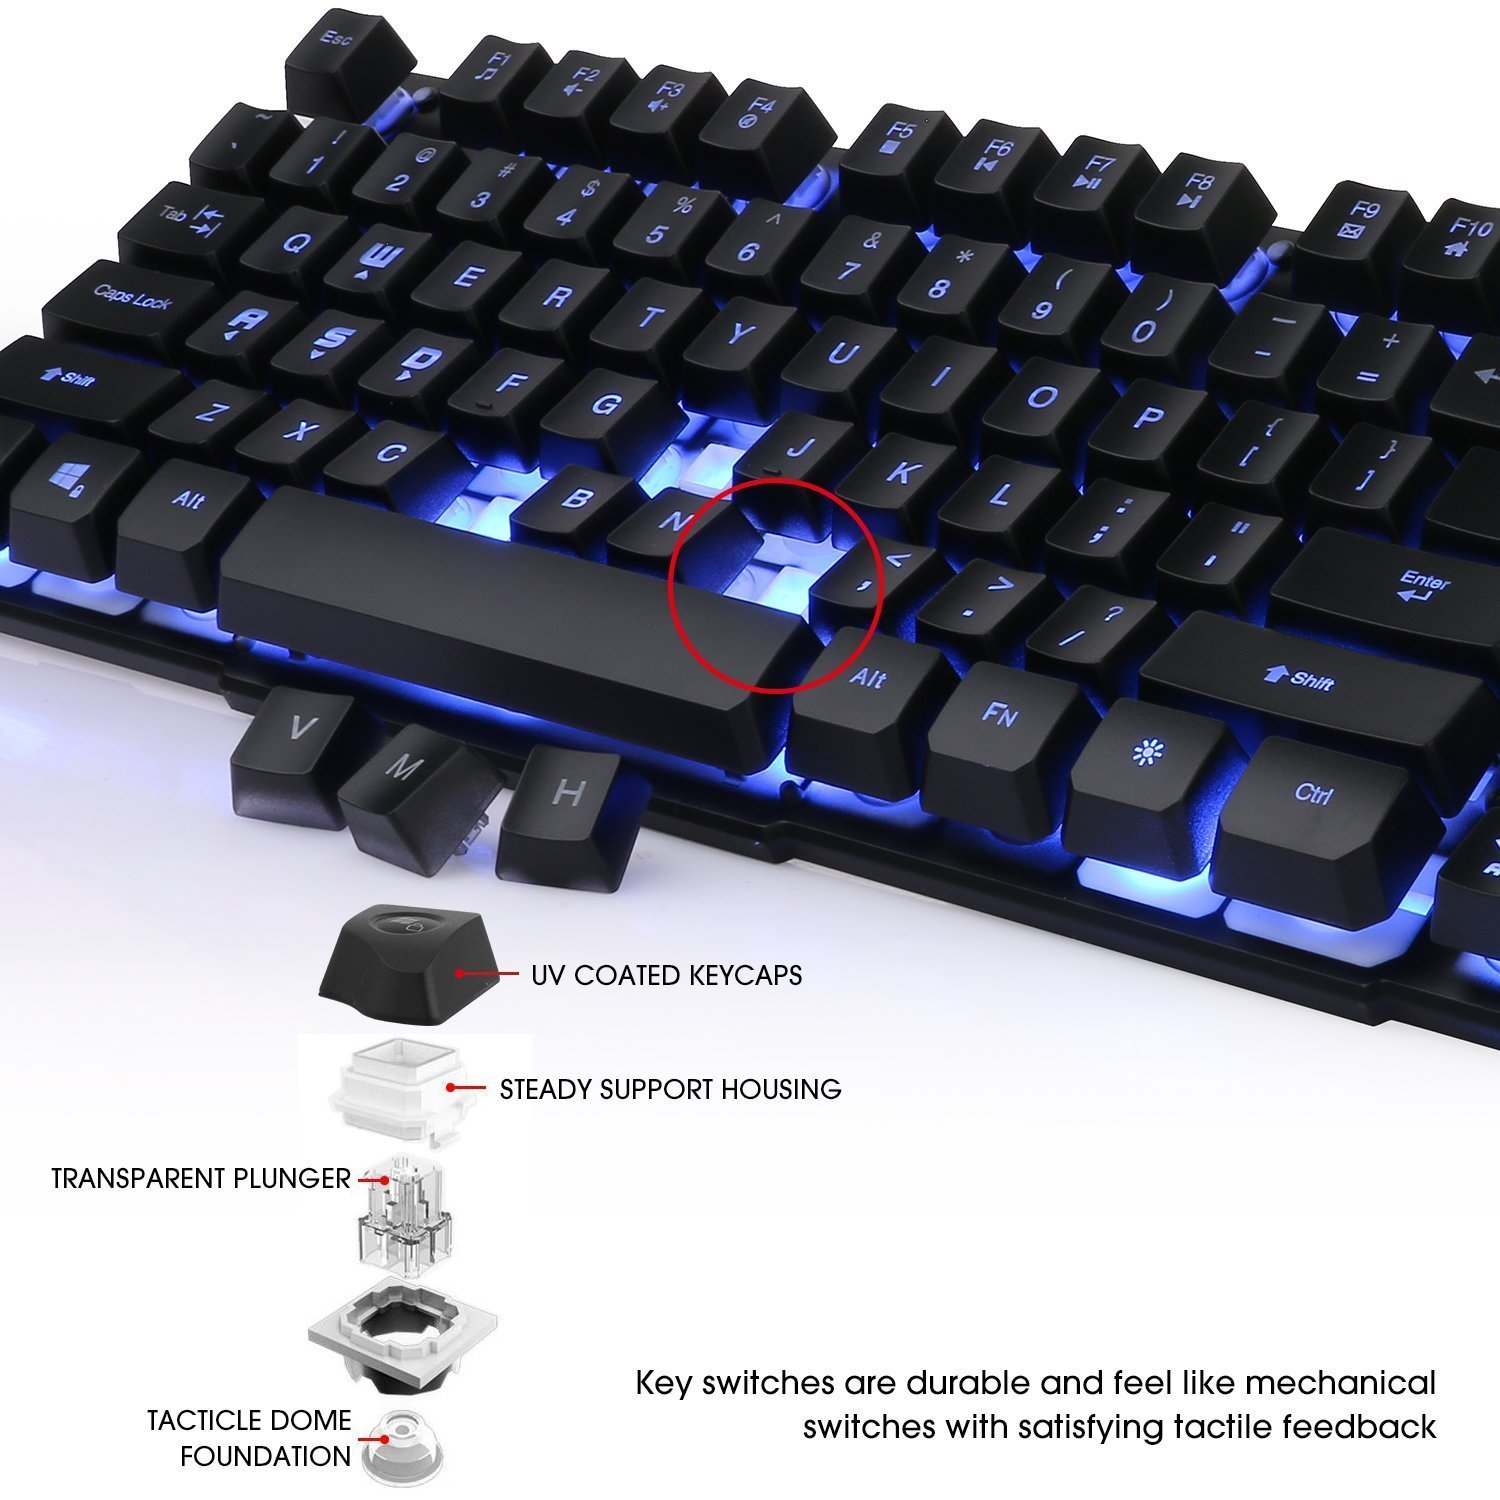 Keyboard, BeeMoon Wired Gaming Keyboard with Three Colors Backlit Supporting Windows 10/ 8 / 7 / Vista / XP, Mac, Linux by Beemoon (Image #6)